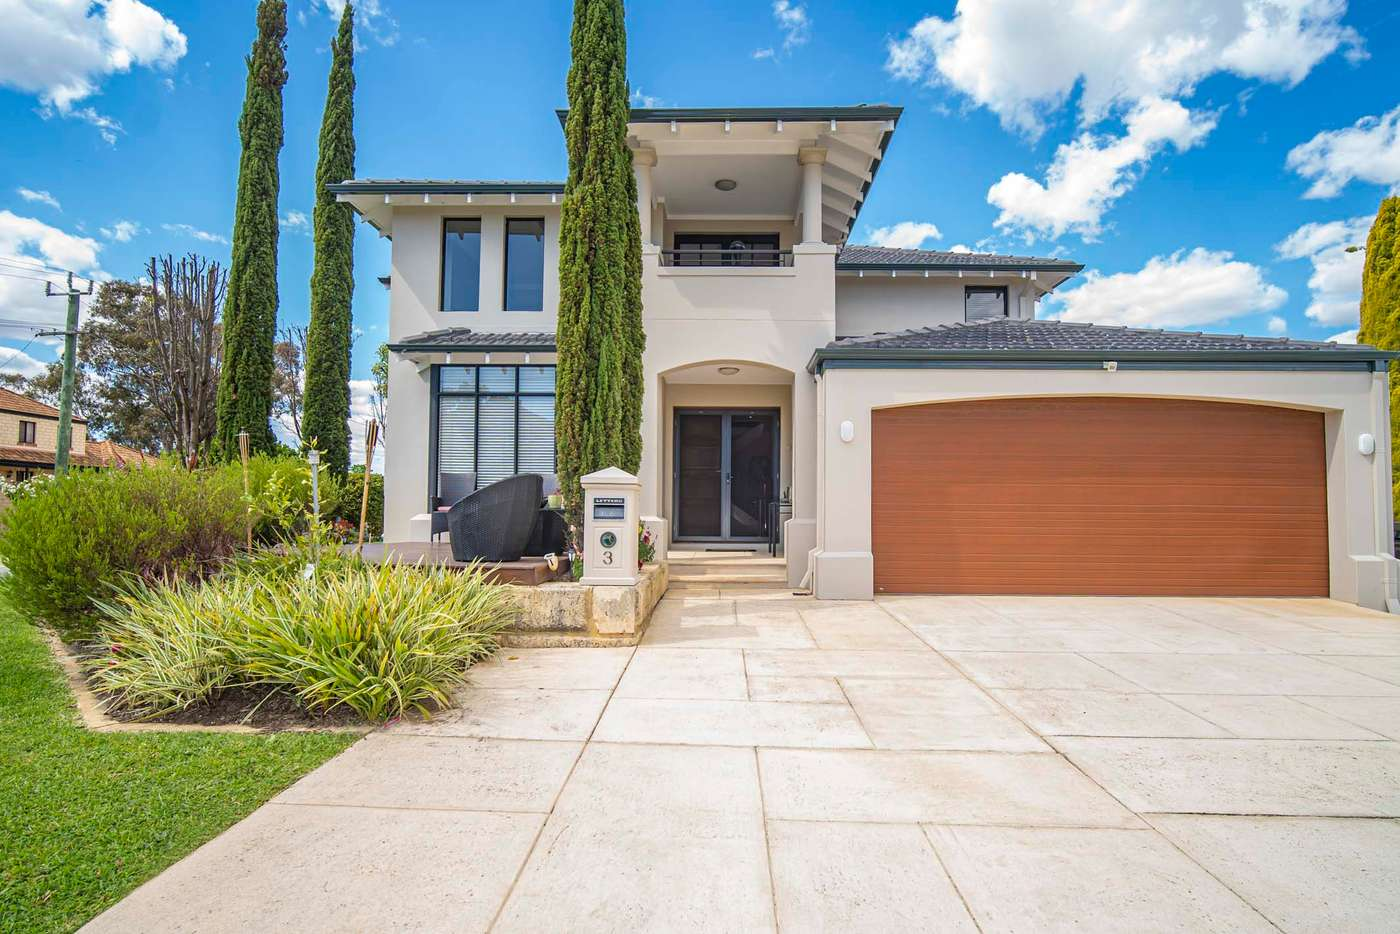 Main view of Homely house listing, 3 Kanowna Avenue West, Ascot WA 6104